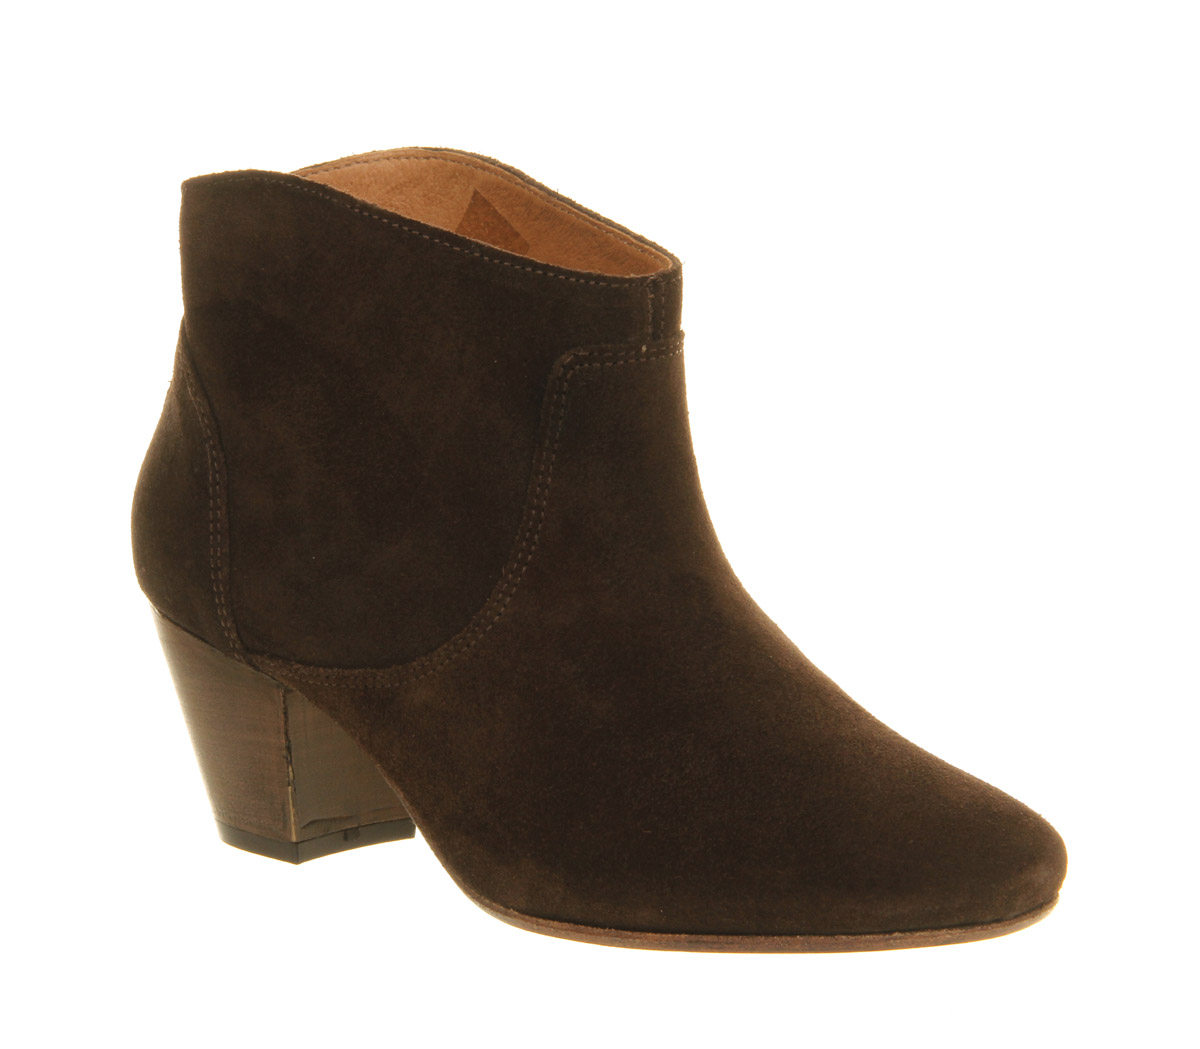 Women's boots for latest style! Buy classic Chelsea, ankle & leather styles for added accents. Next day delivery and free returns available.